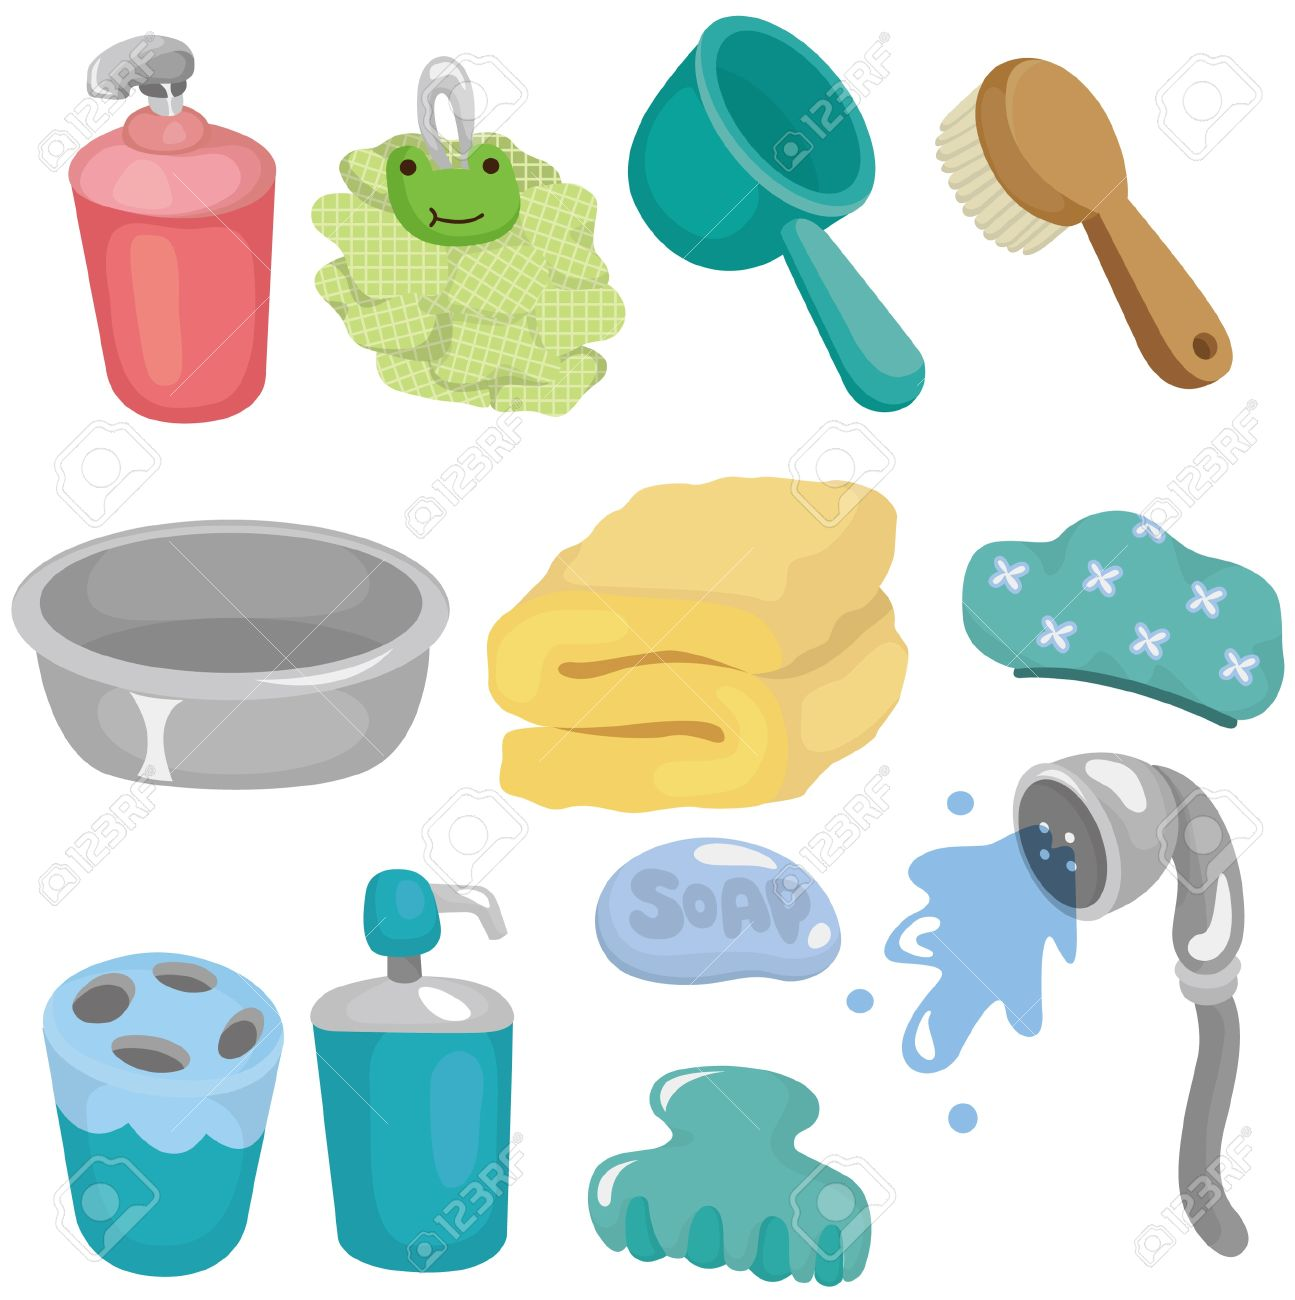 Bathroom Equipment Stock Illustrations Cliparts And